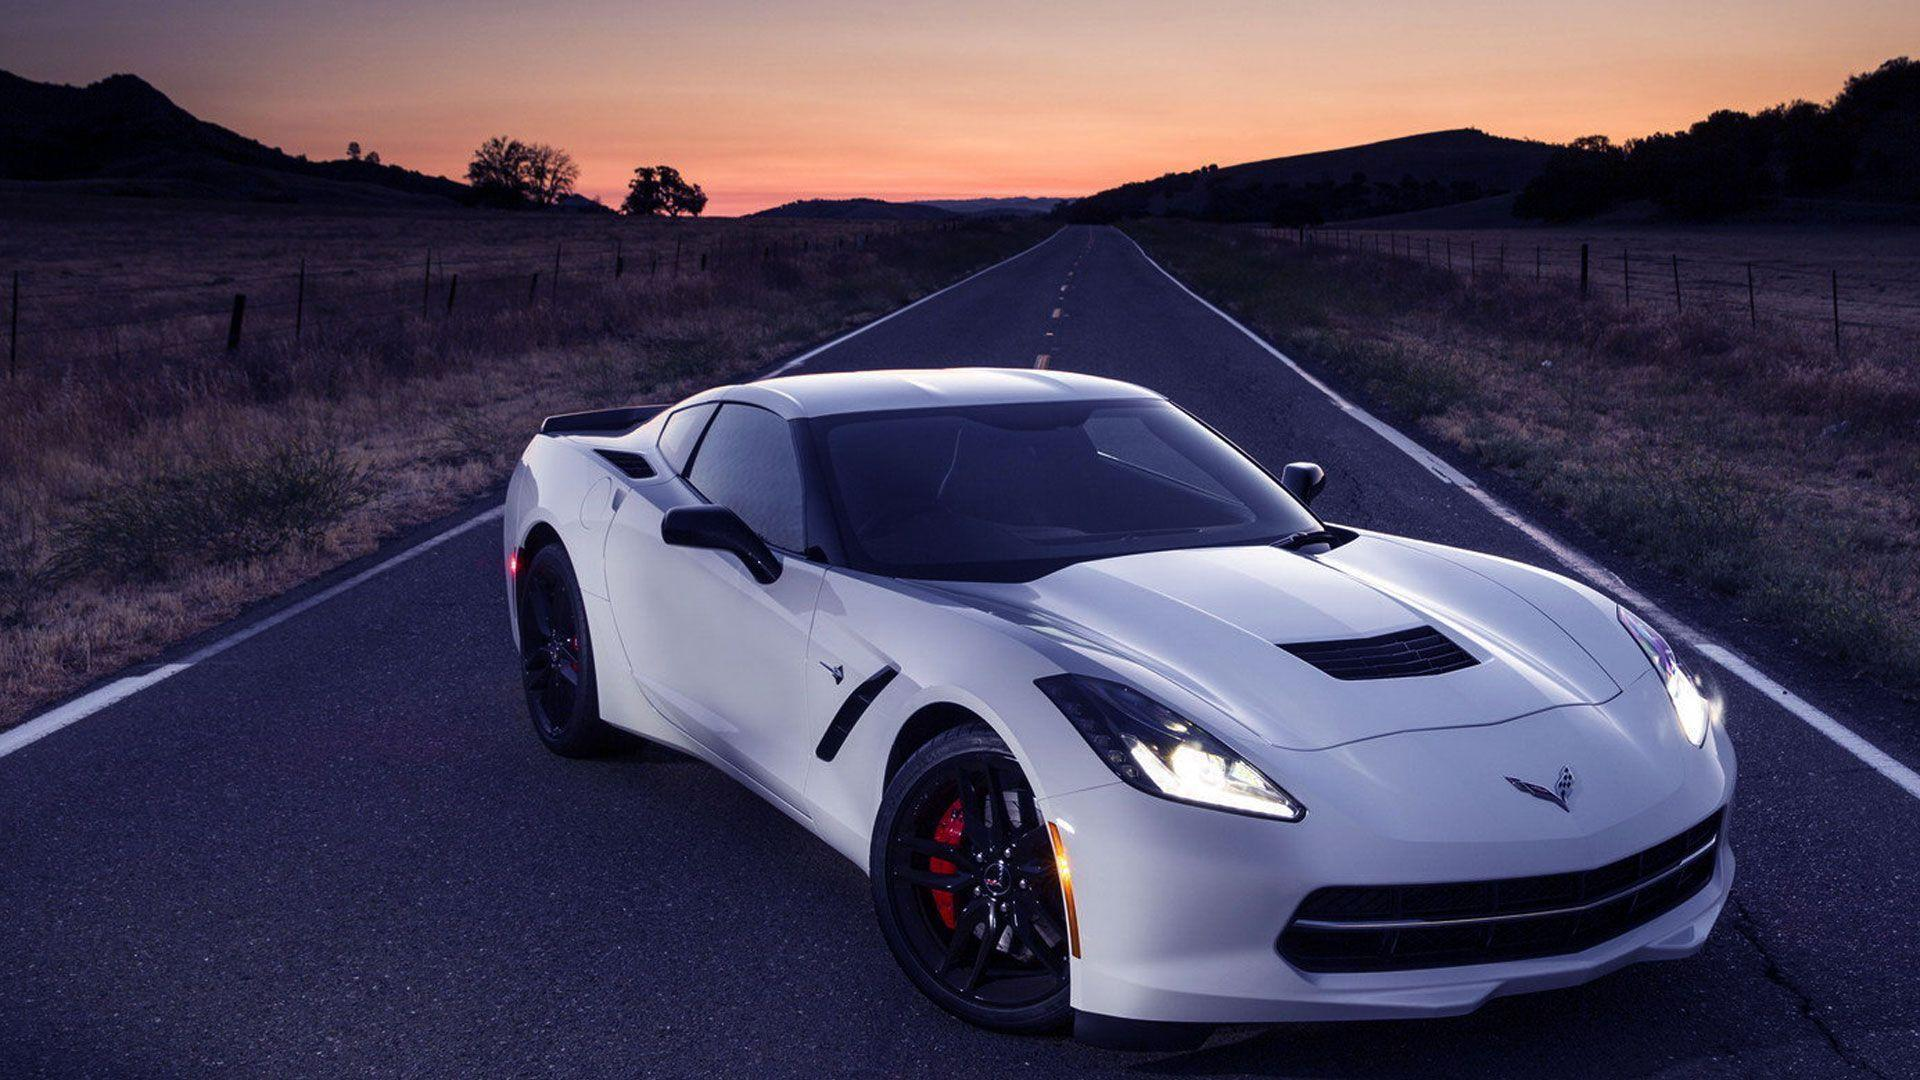 corvette wallpaper hd - photo #3